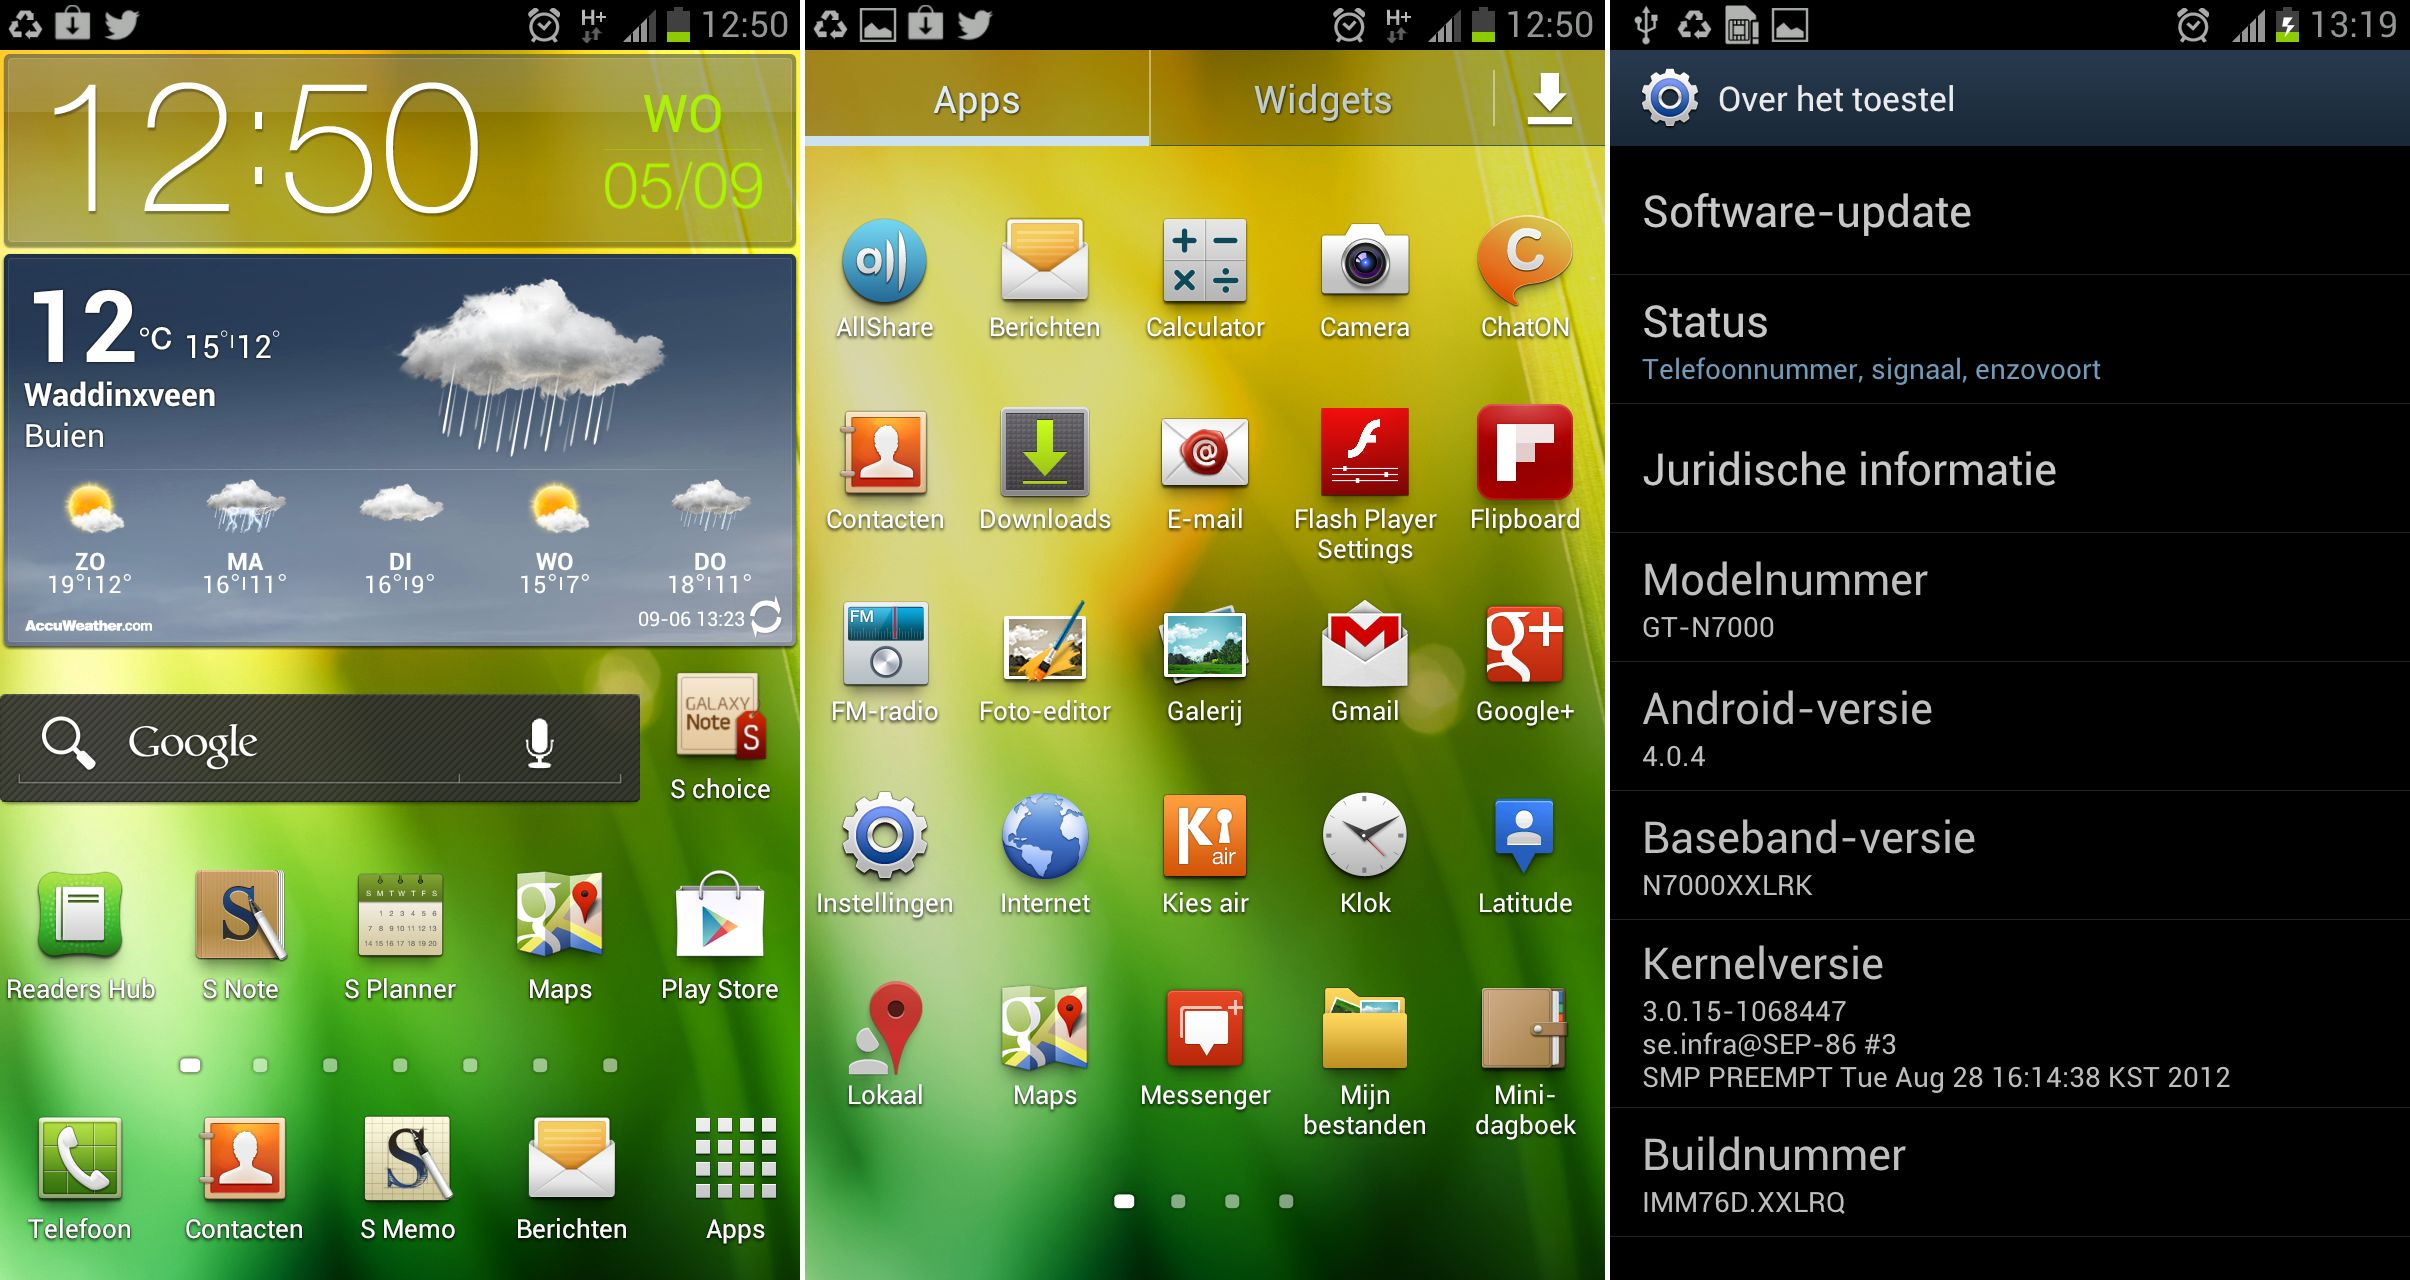 Official Android 4.2.1 for Galaxy S3